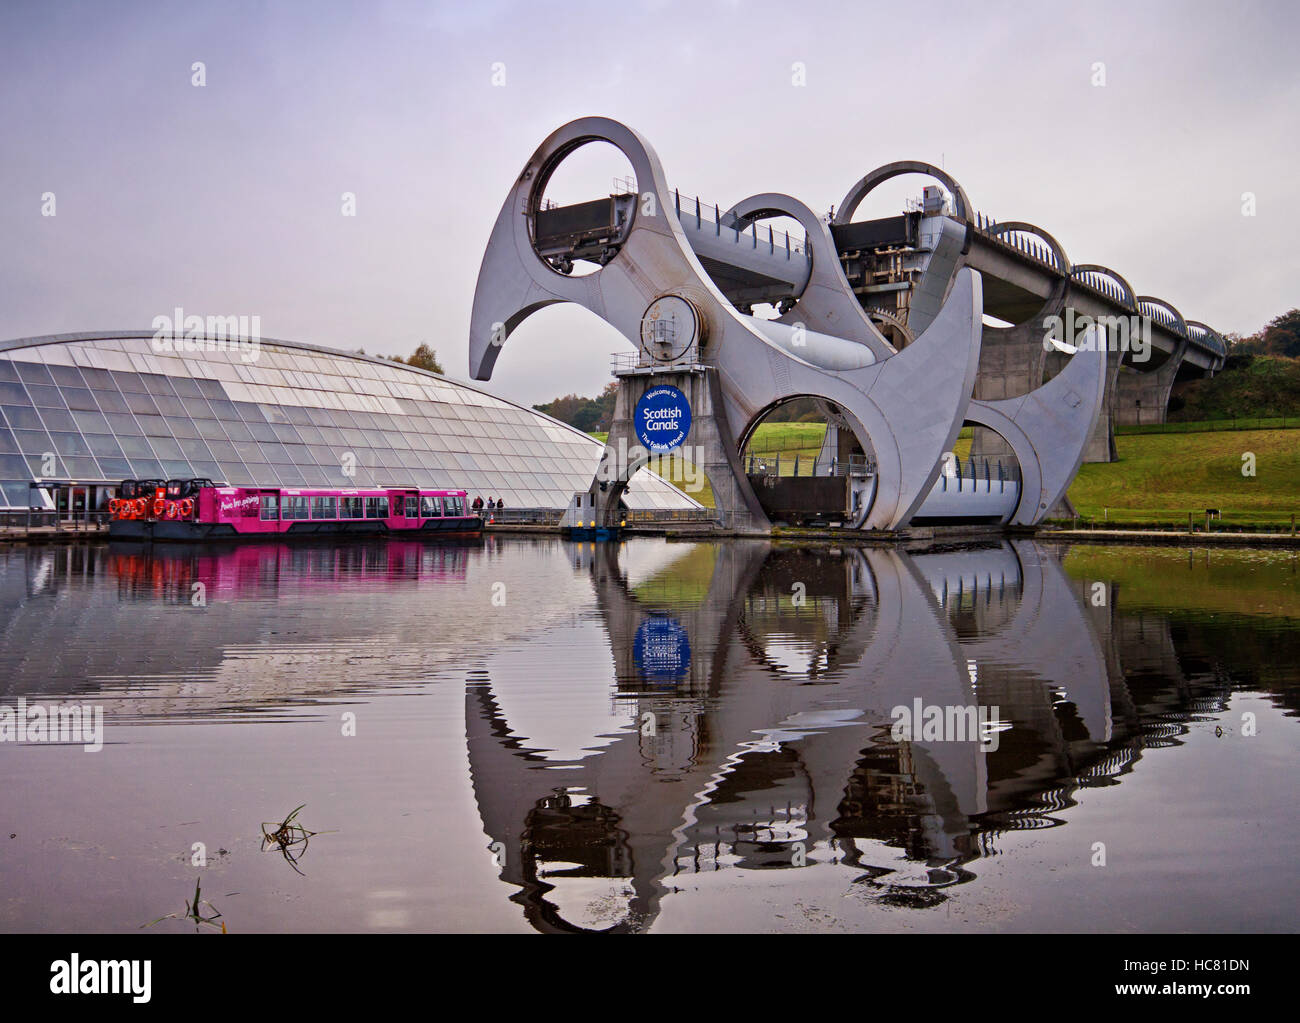 The Falkirk Wheel in motion - Stock Image